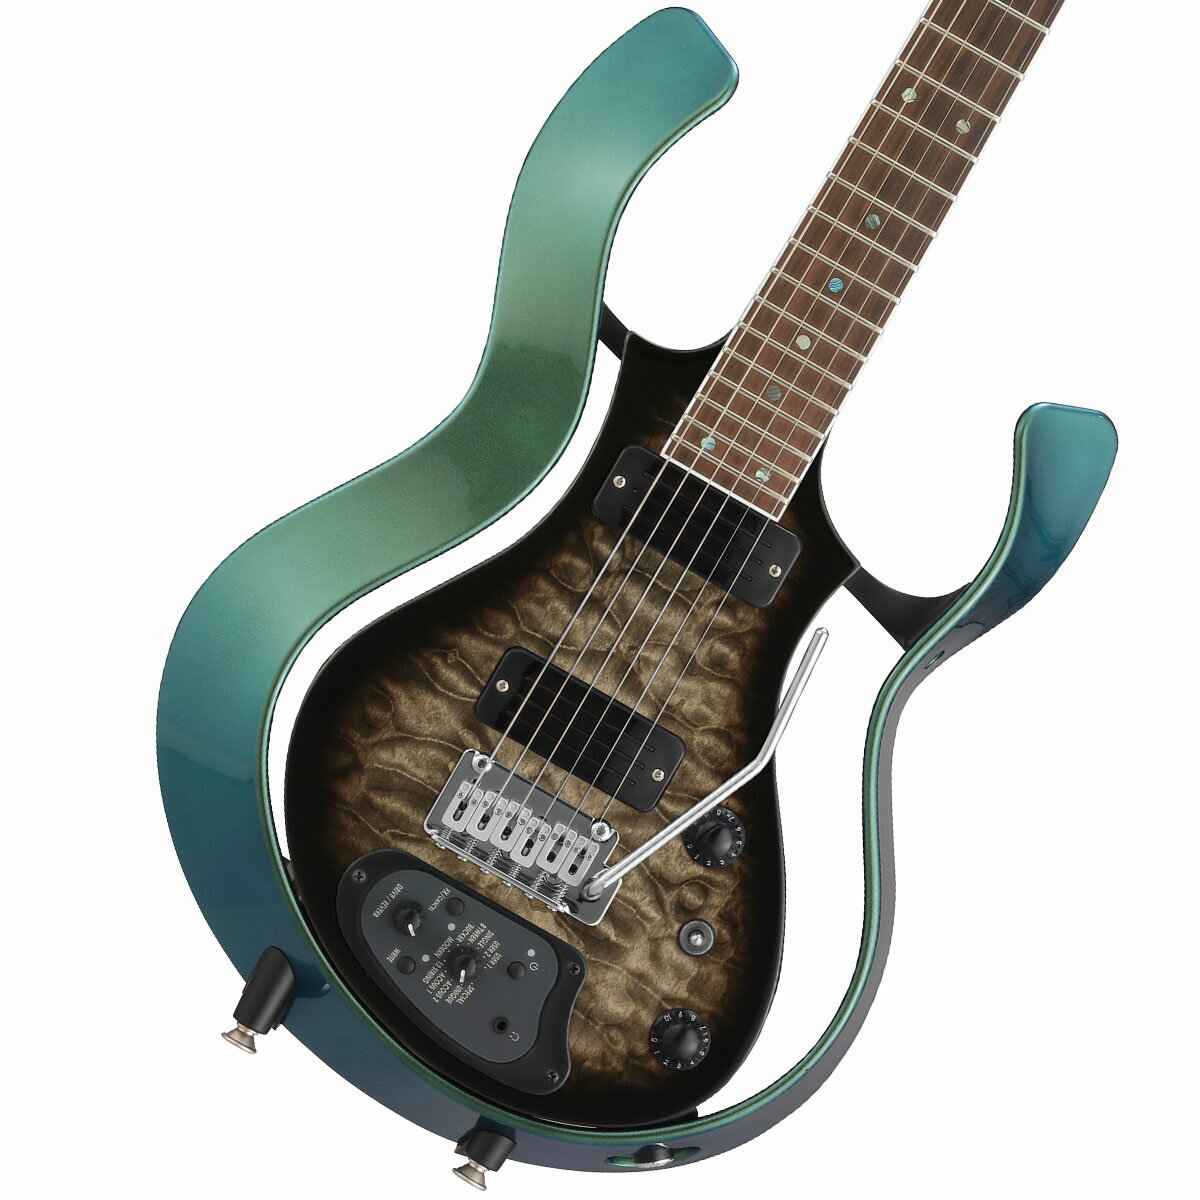 VOX / Modeling Electric Guitar Starstream Type 1-24 Metallic Green Frame with Black Burst/Qulted Maple Top